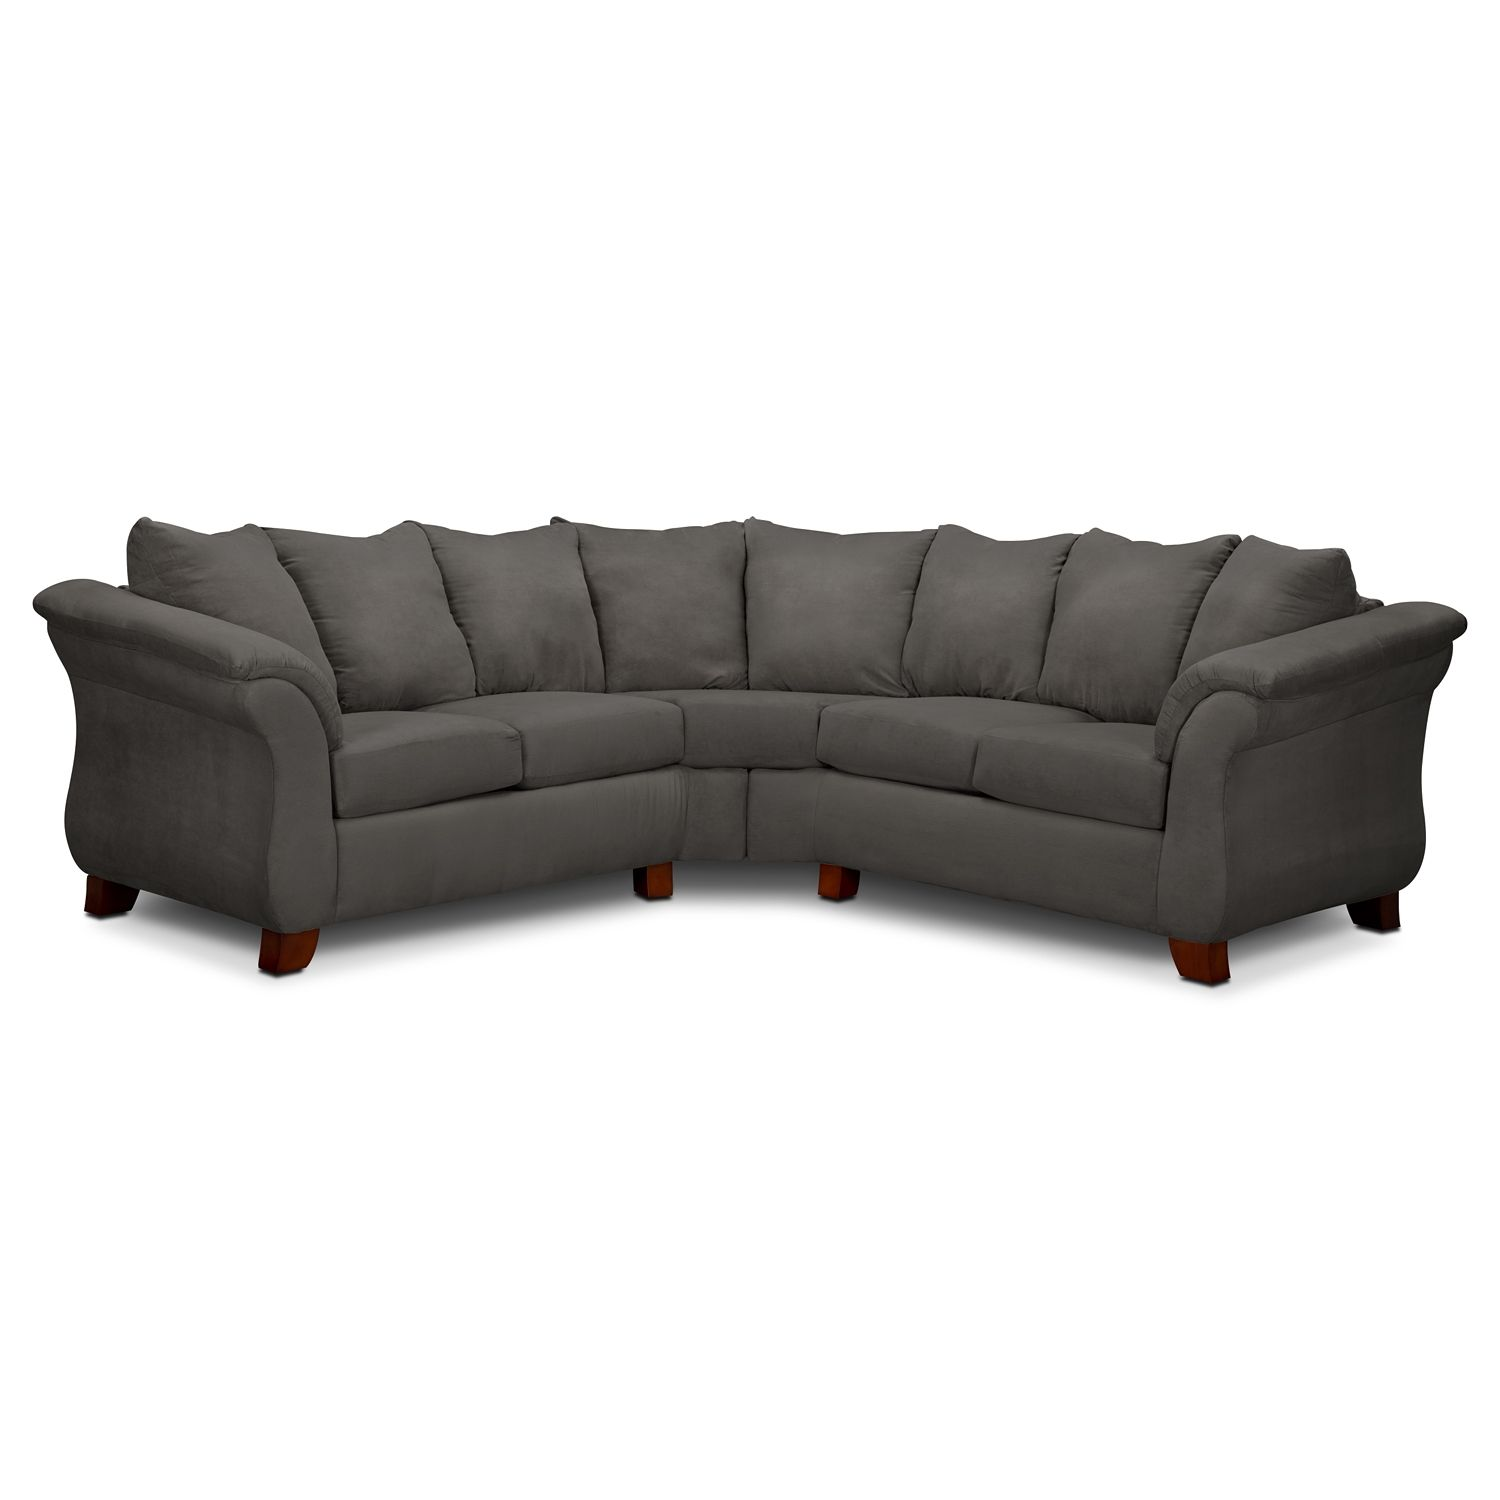 Living Room Furniture - Adrian Graphite II 2 Pc. Sectional...Value ...